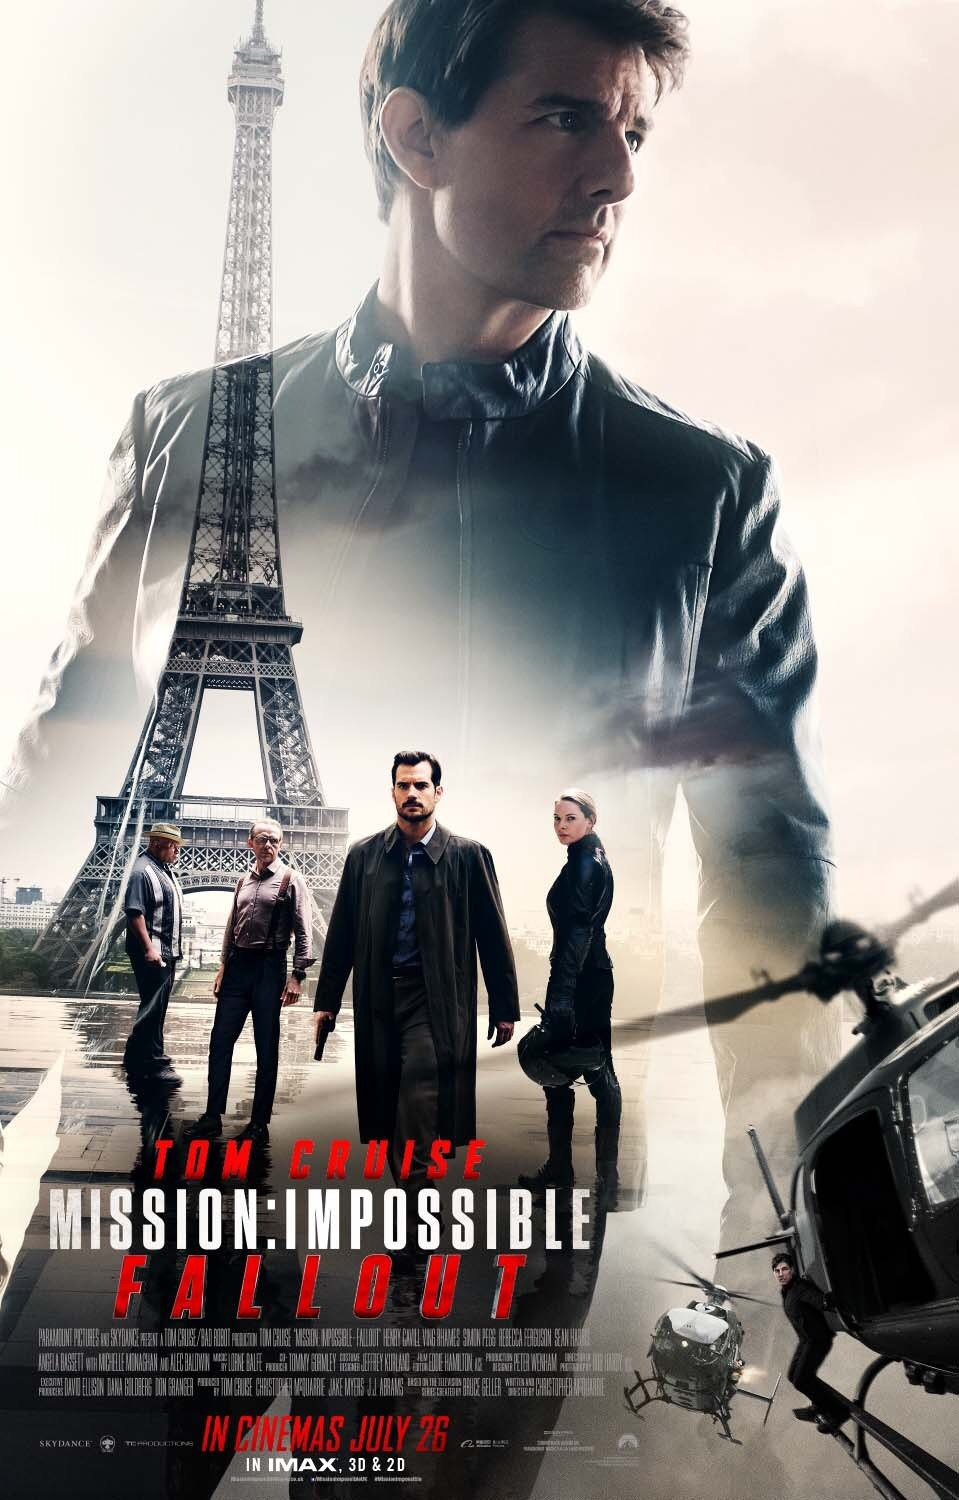 Mission Impossible Fallout poster 4.jpg